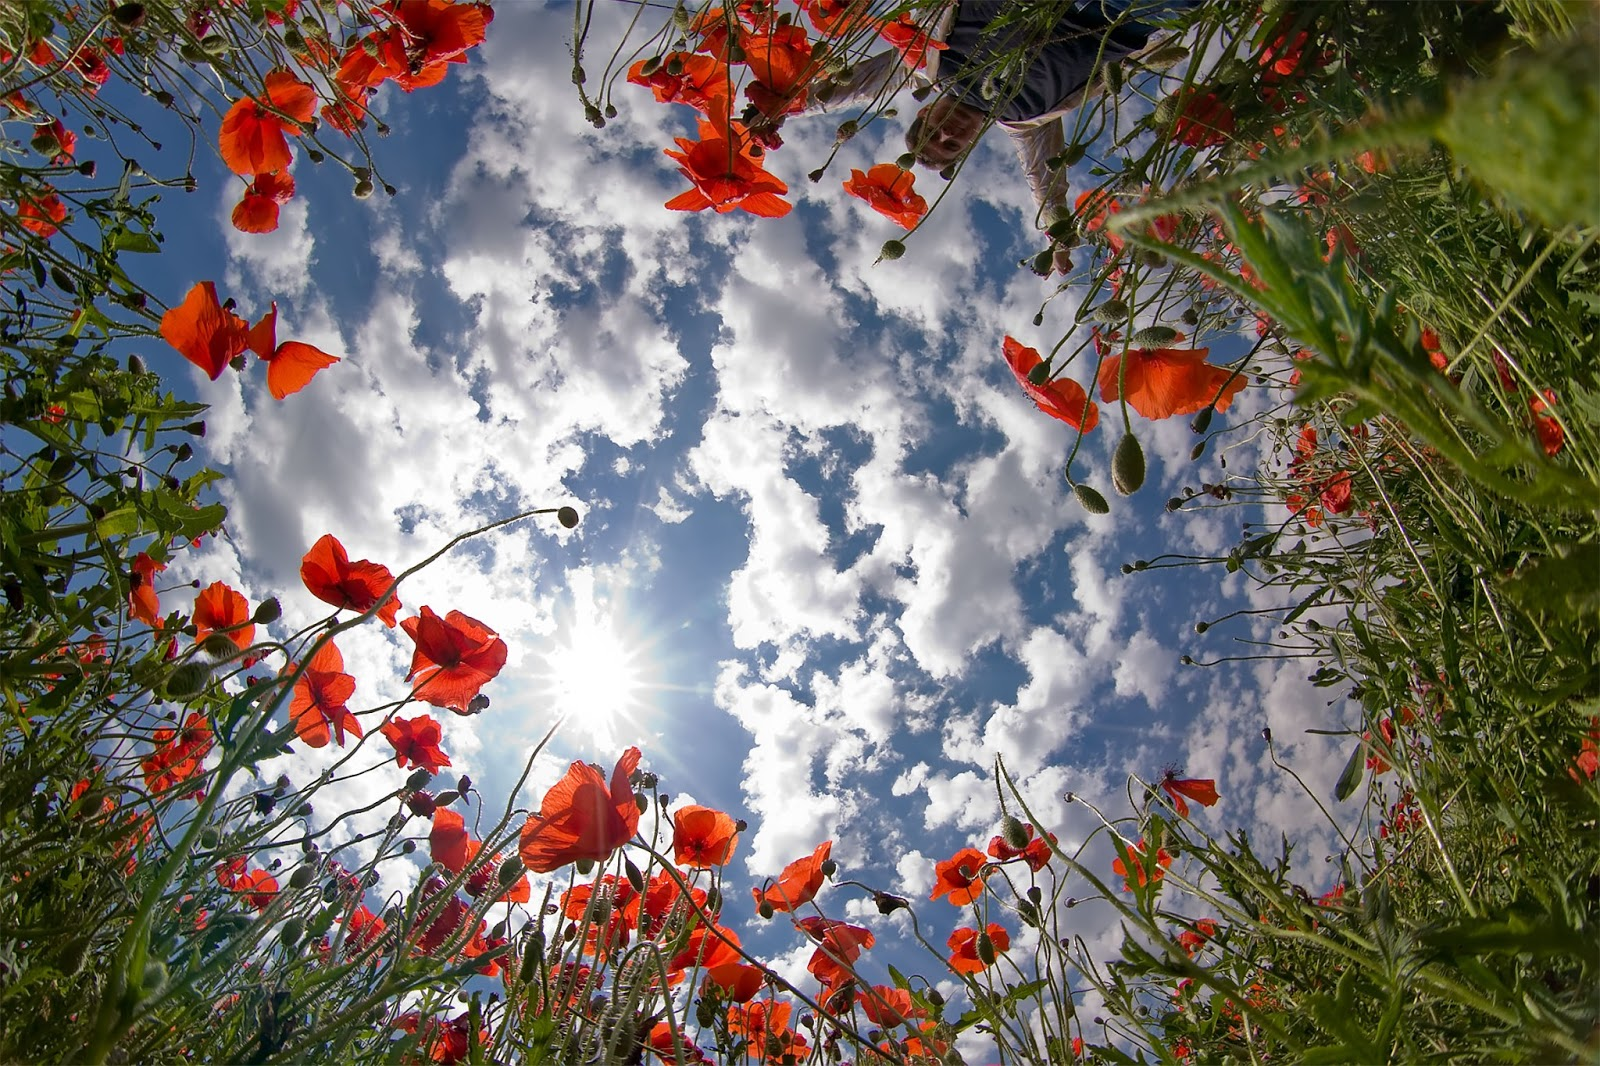 flower_photography_fisheye_lens